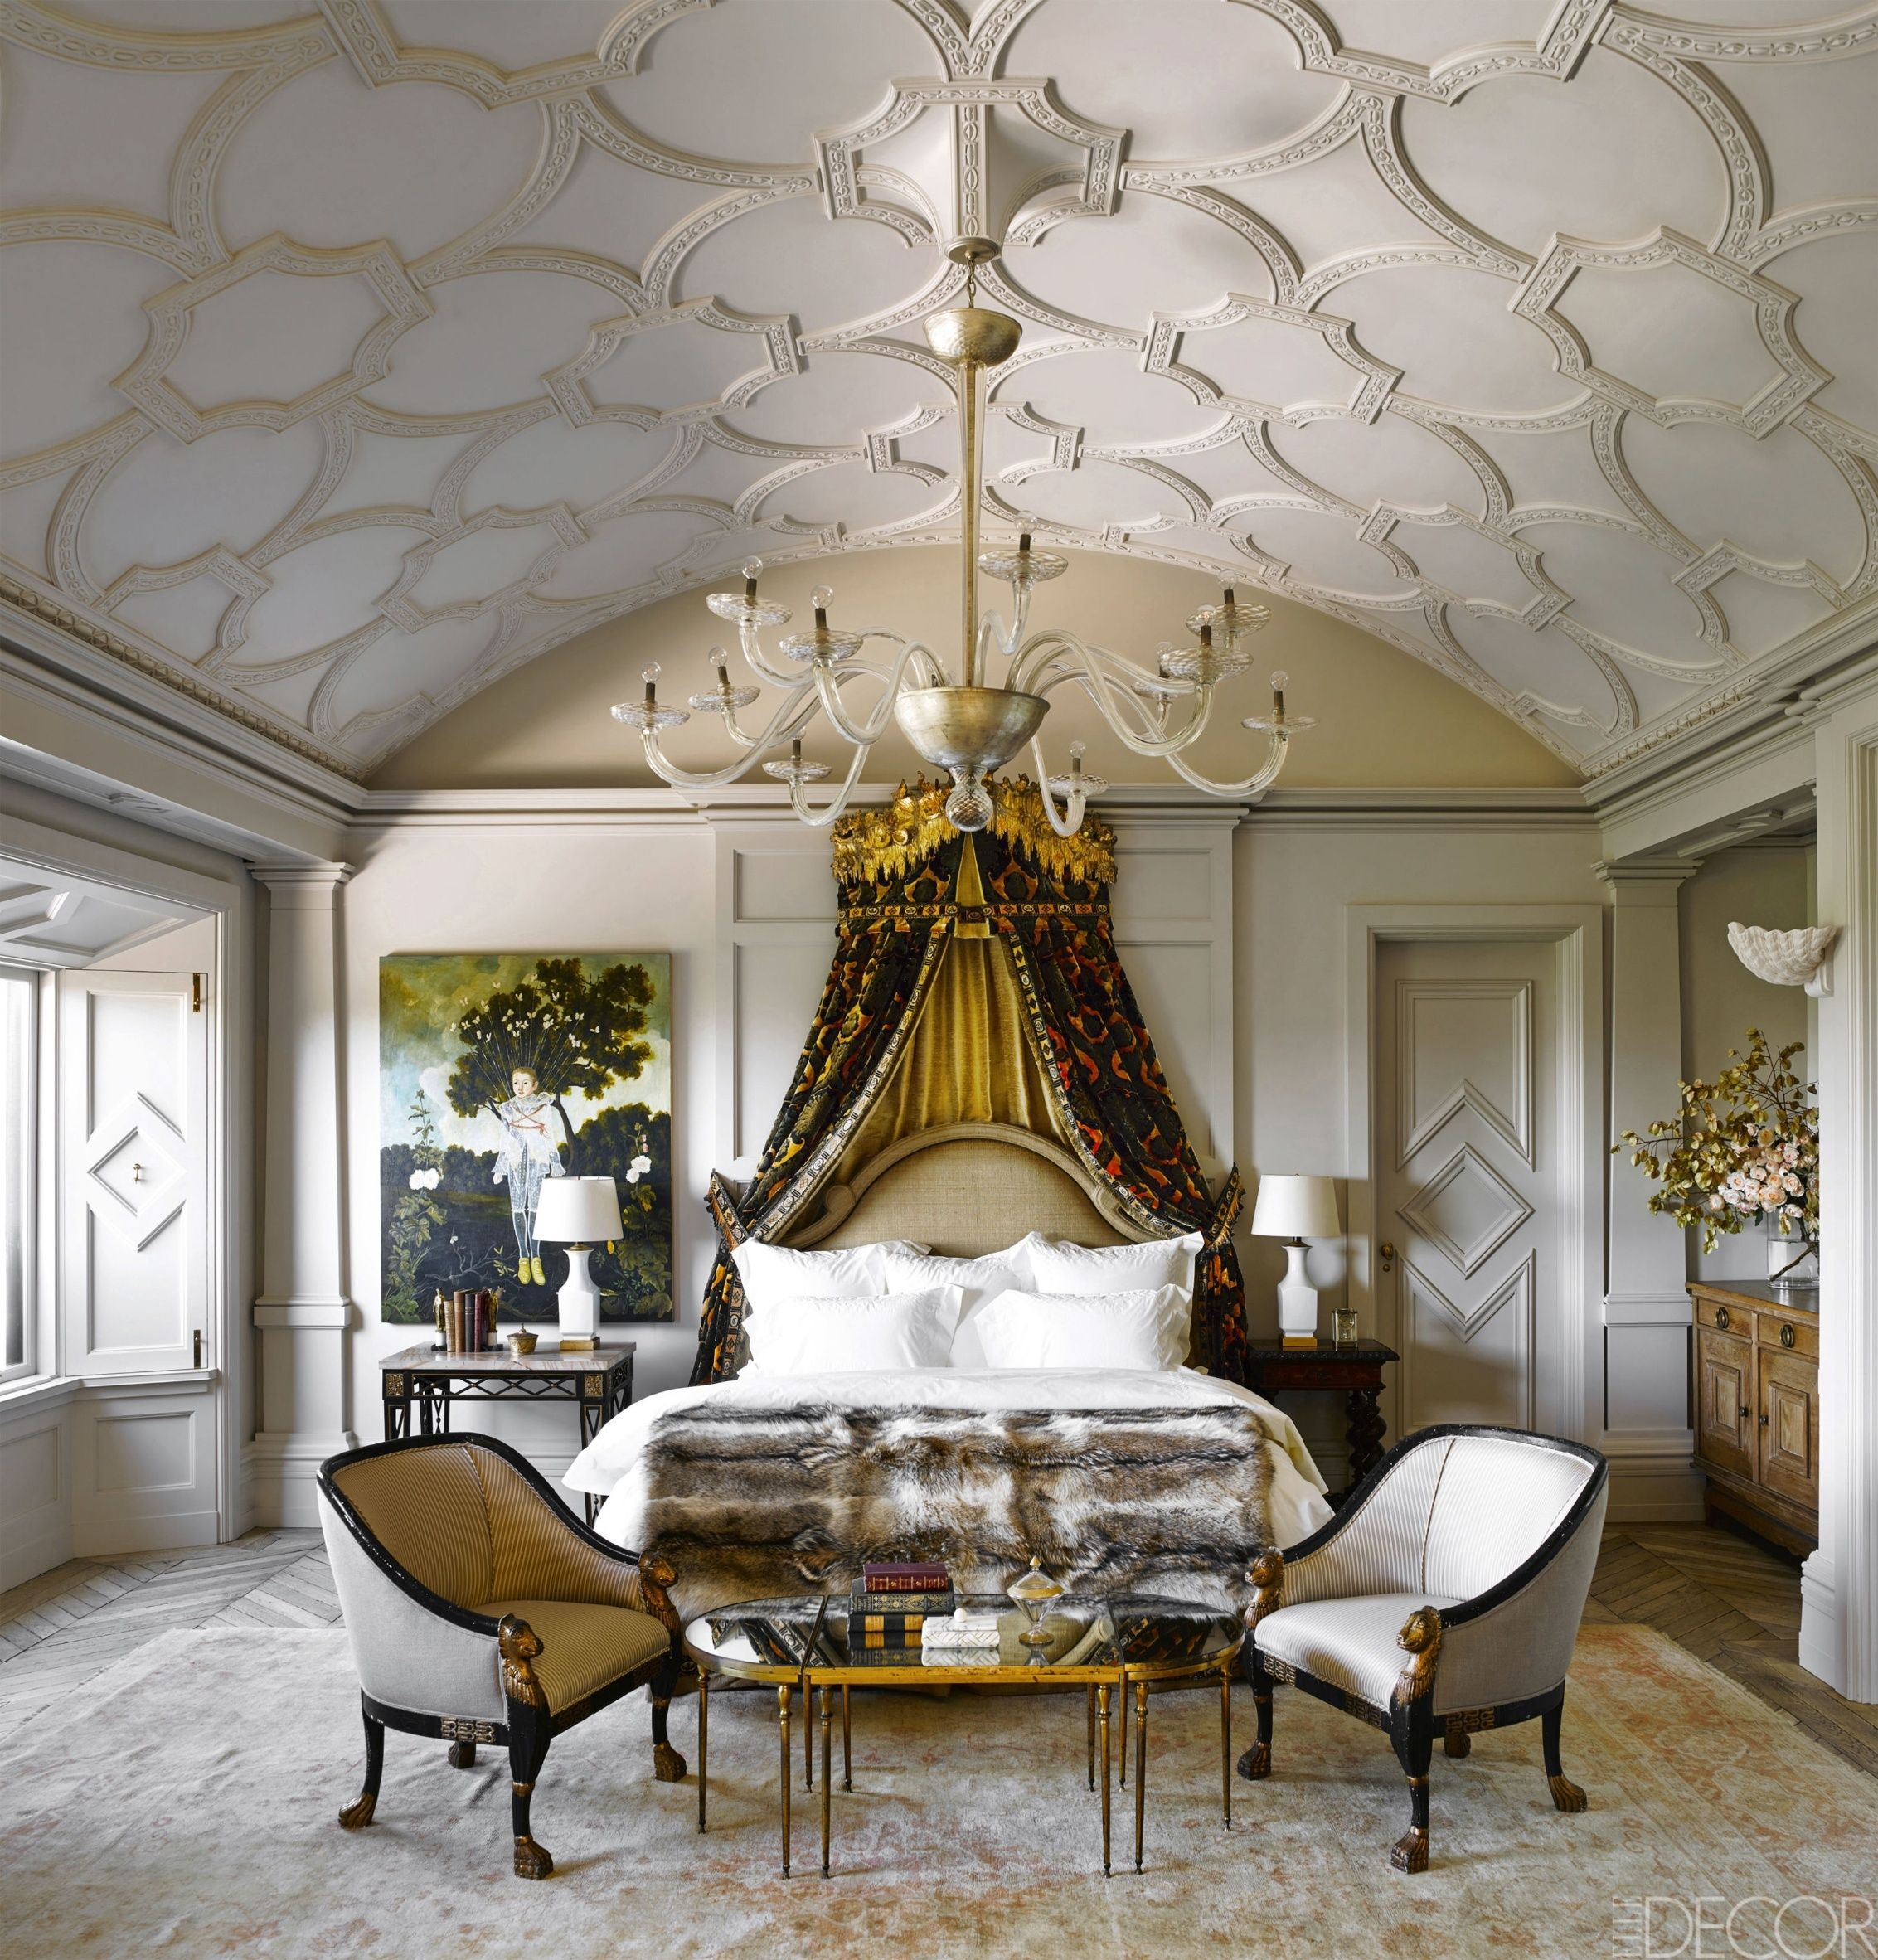 20 Best Ceiling Ideas - Ceiling Paint And Ceiling Decorations